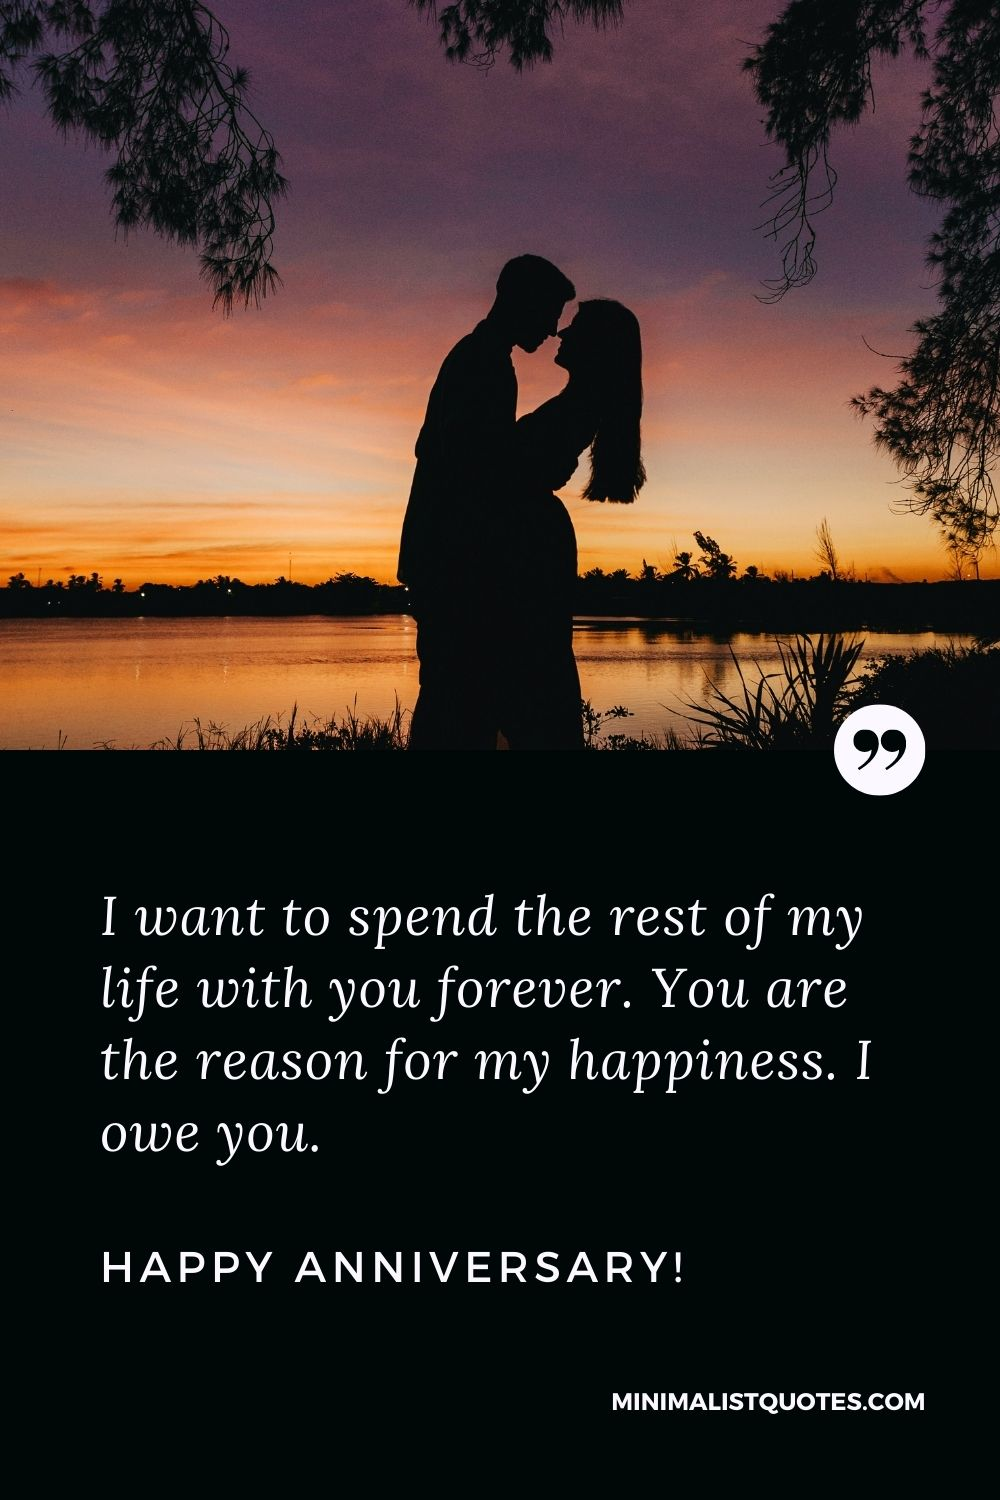 Anniversary status for husband: I want to spend the rest of my life with you forever. You are the reason for my happiness. I owe you. Happy Anniversary!